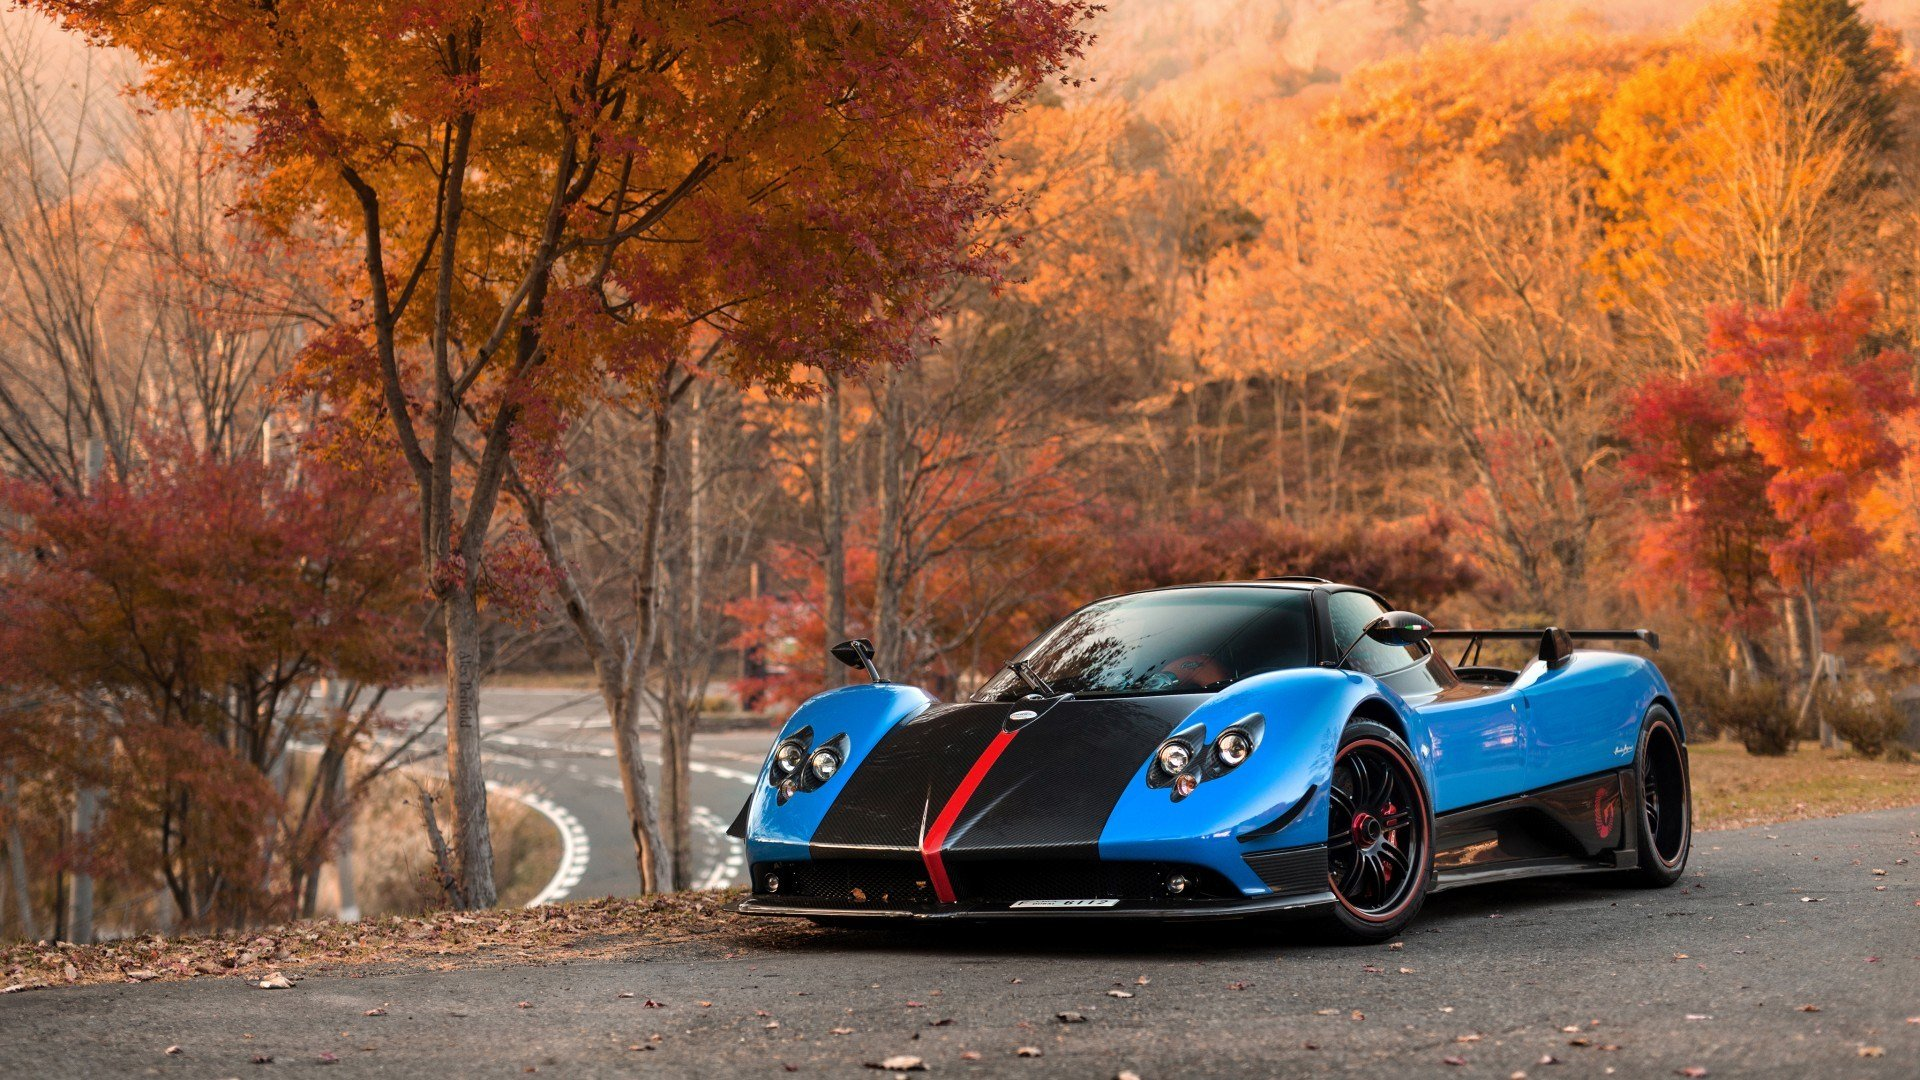 Latest Pagani Zonda Cinque Roadster 4K Wallpaper Hd Car Free Download